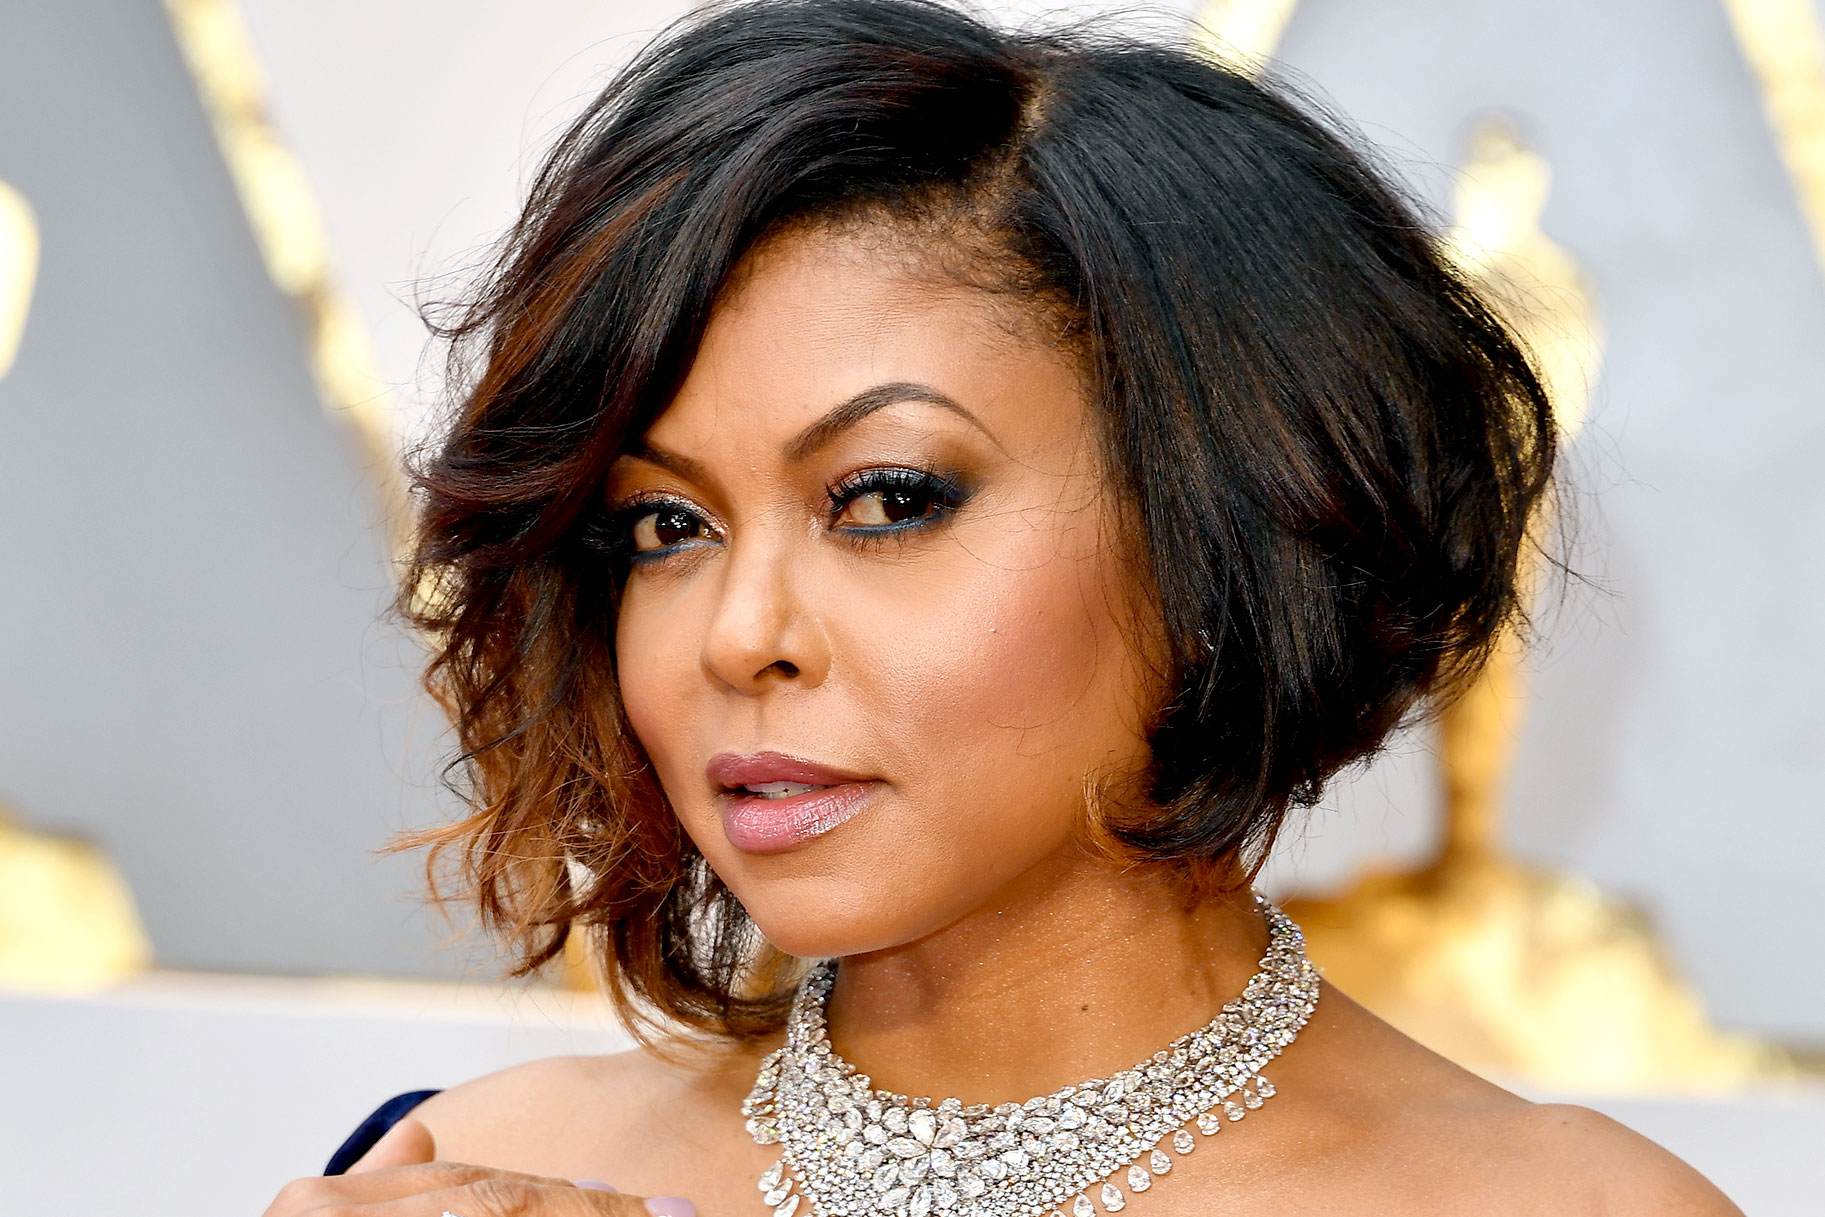 Stupendous Taraji P Henson Gets Blunt Bob With Bangs Haircut See Pics Natural Hairstyles Runnerswayorg